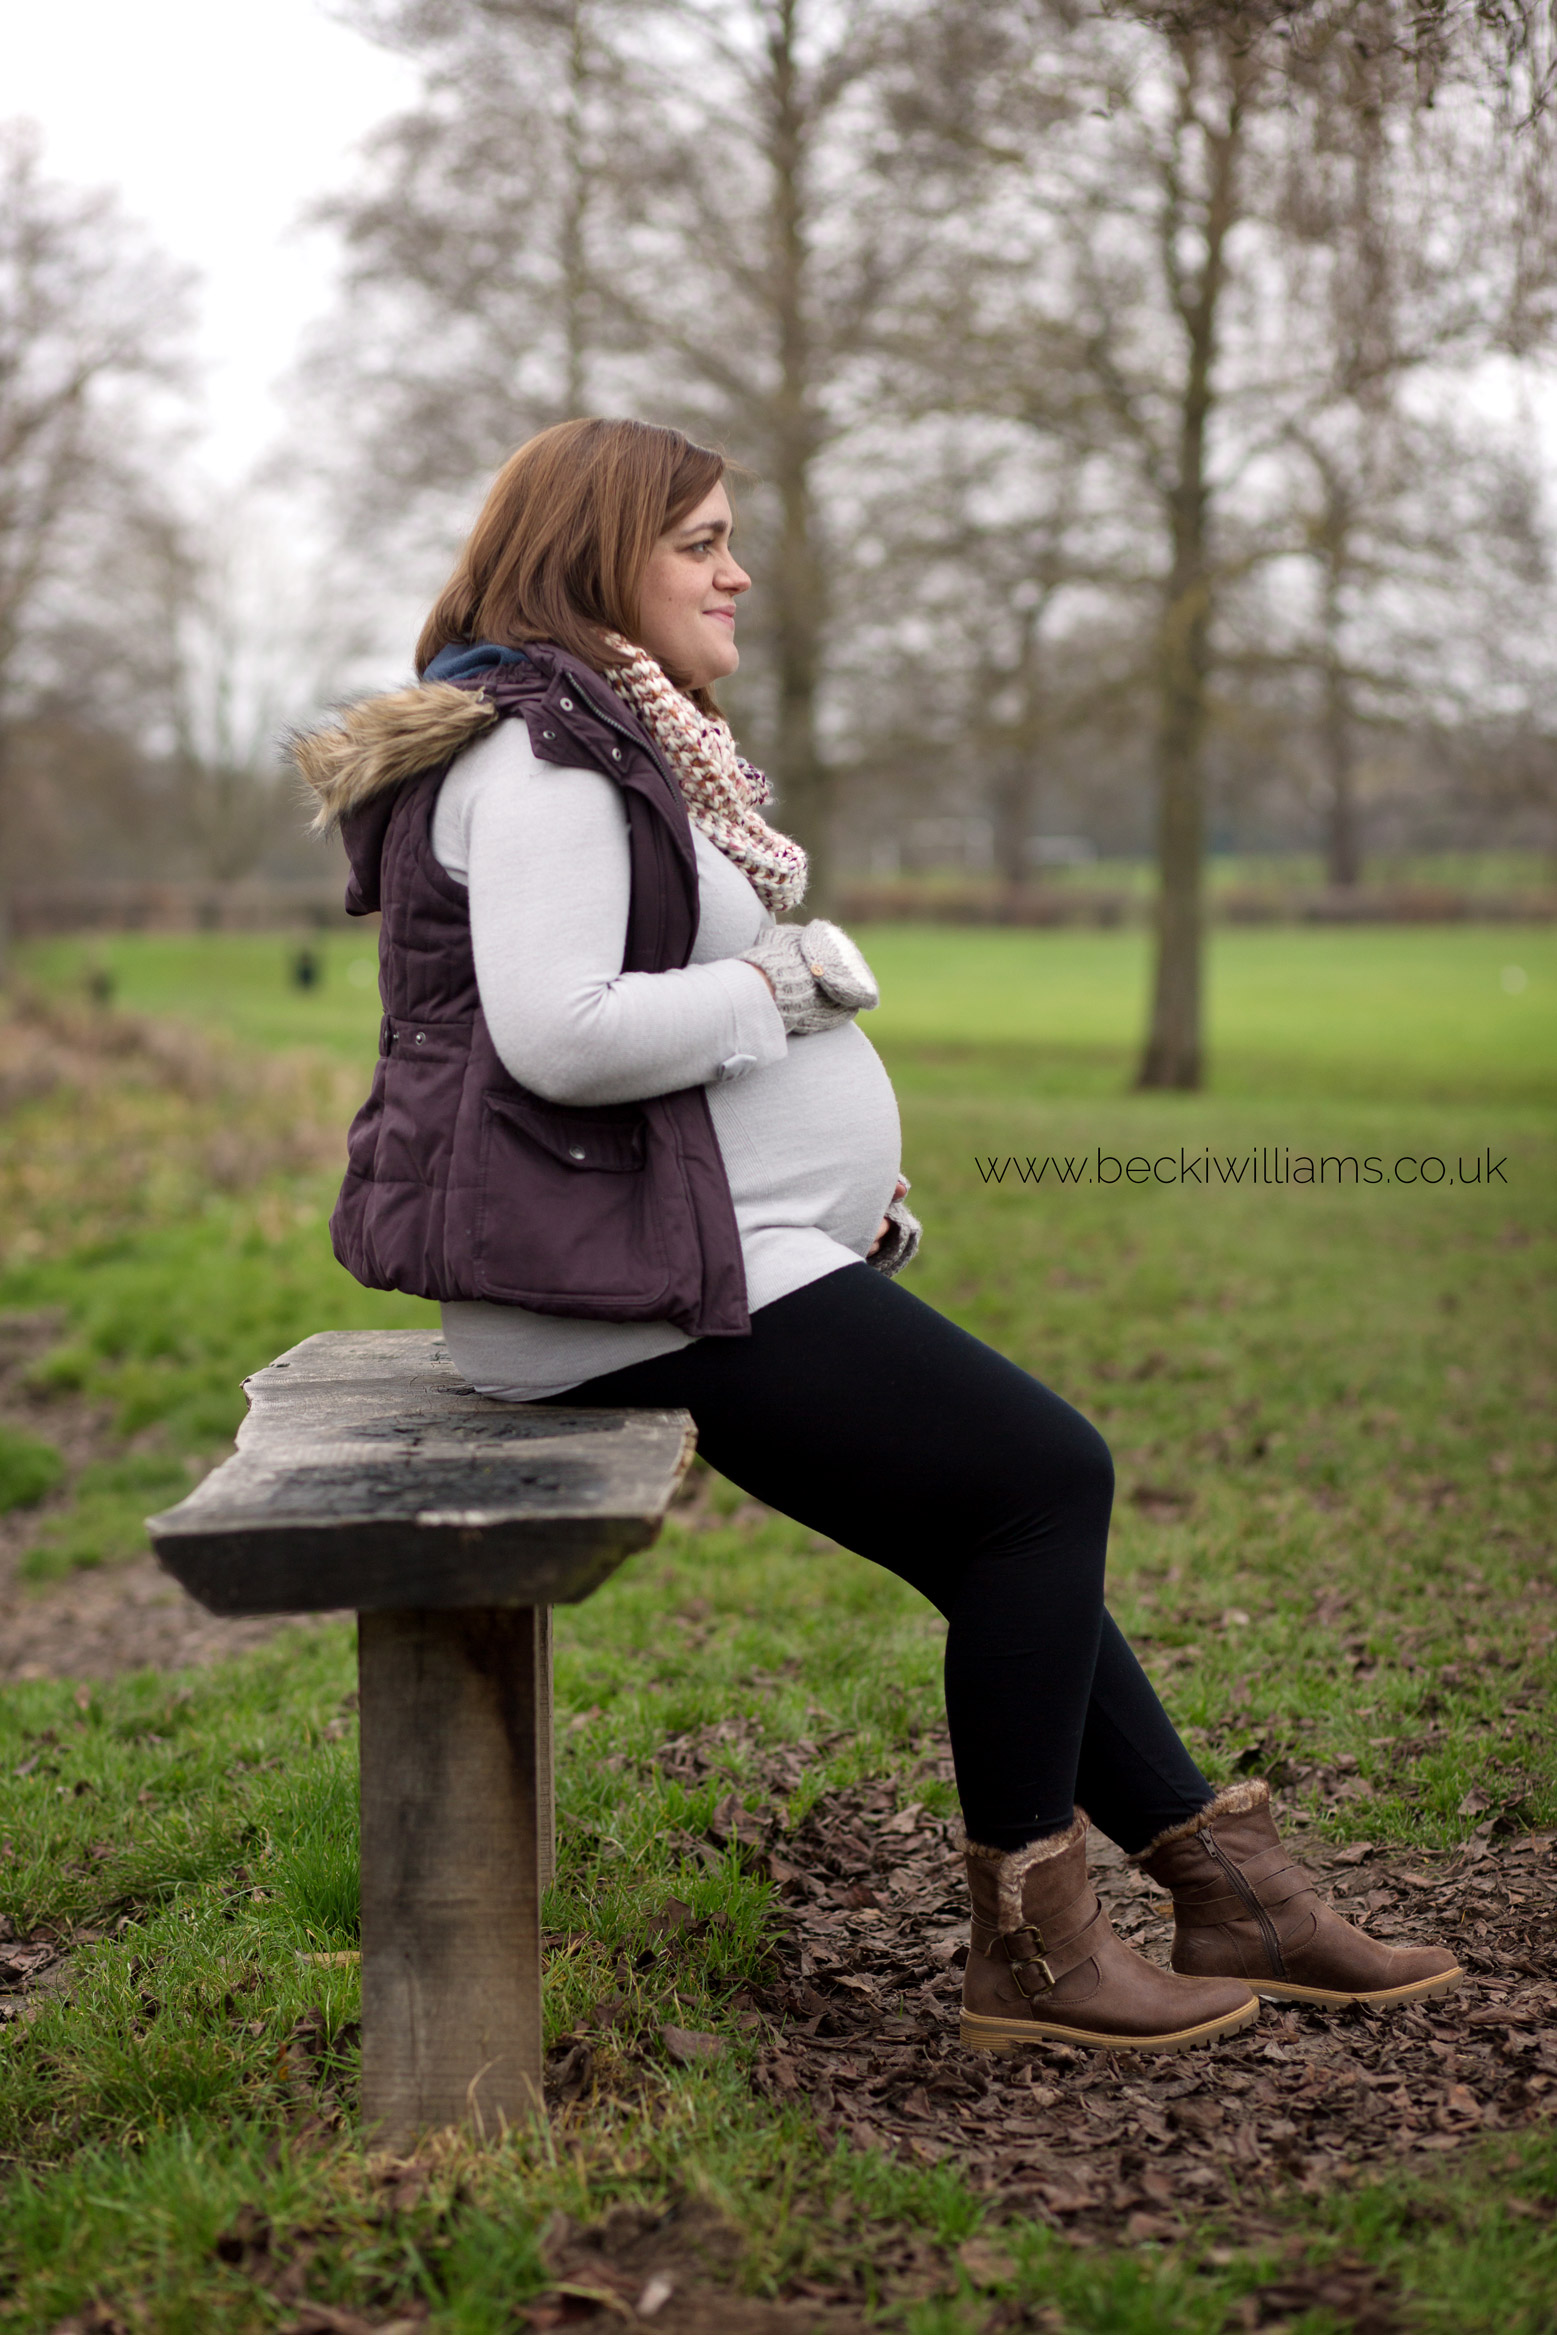 maternity photo shoot in gadebridge park - pregnant lady sits side on on a park bench, holding her tummy